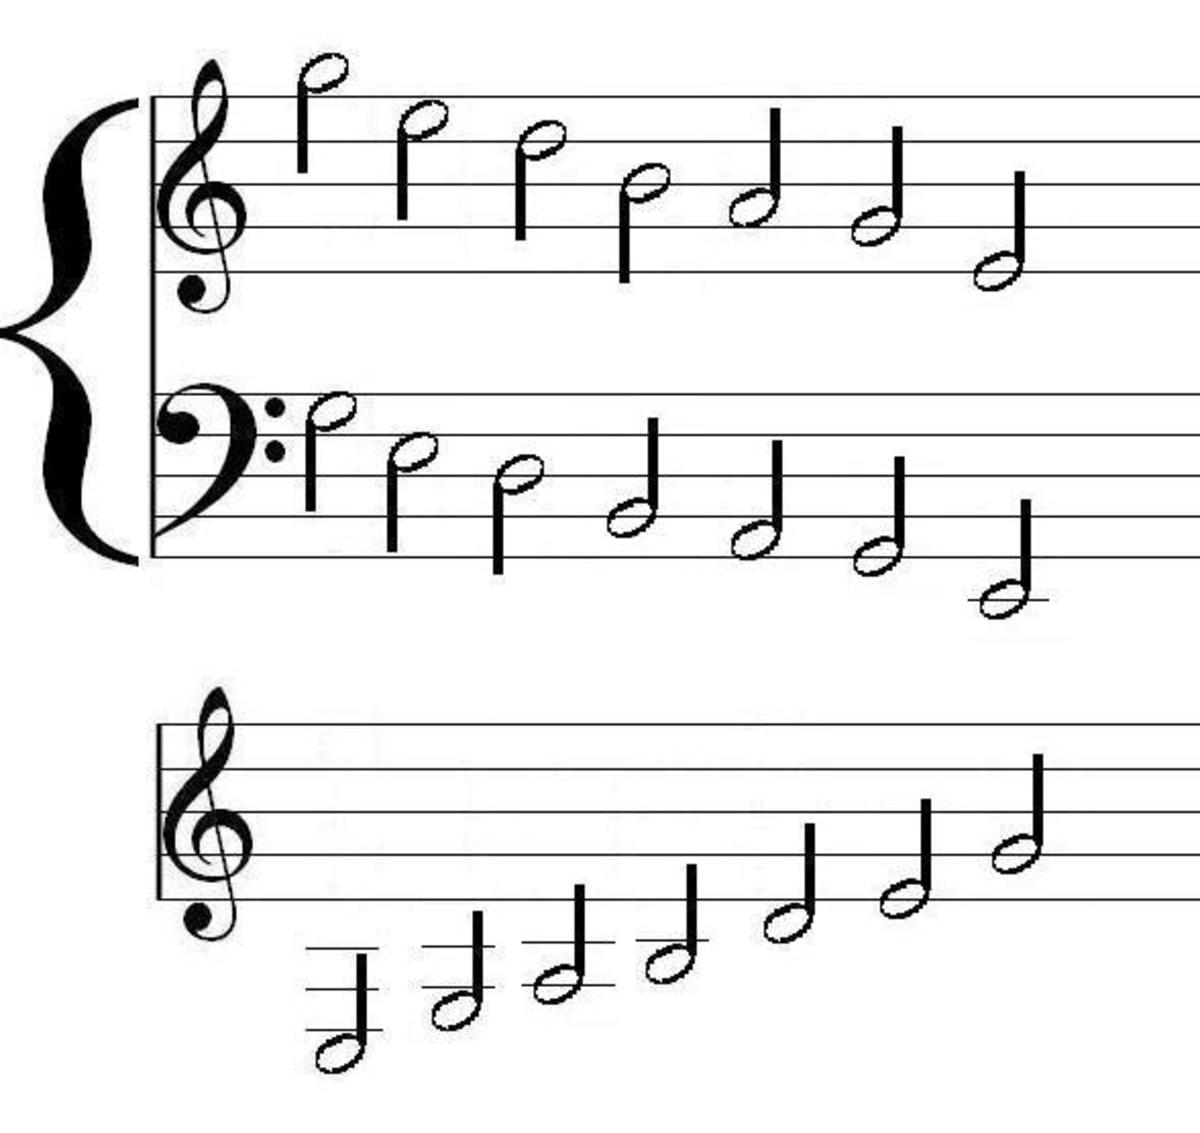 On the grand staff for piano (descending) and on the treble staff for guitar (ascending), you can see the intervals of the pentatonic scales.